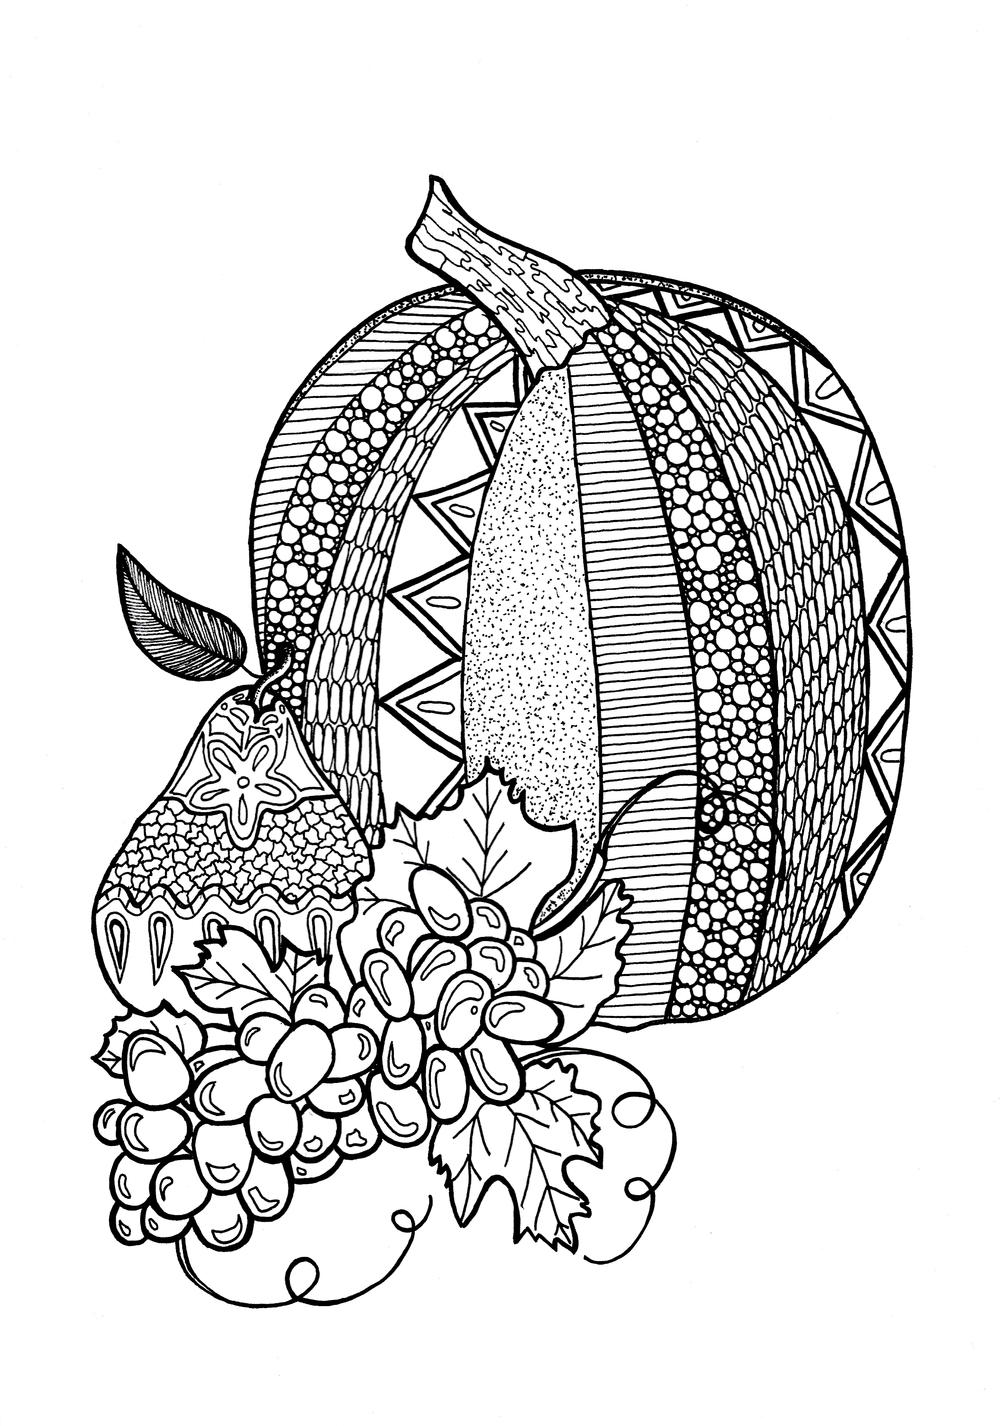 coloring techniques for adults textured pumpkin adult coloring page allfreepapercraftscom adults techniques coloring for